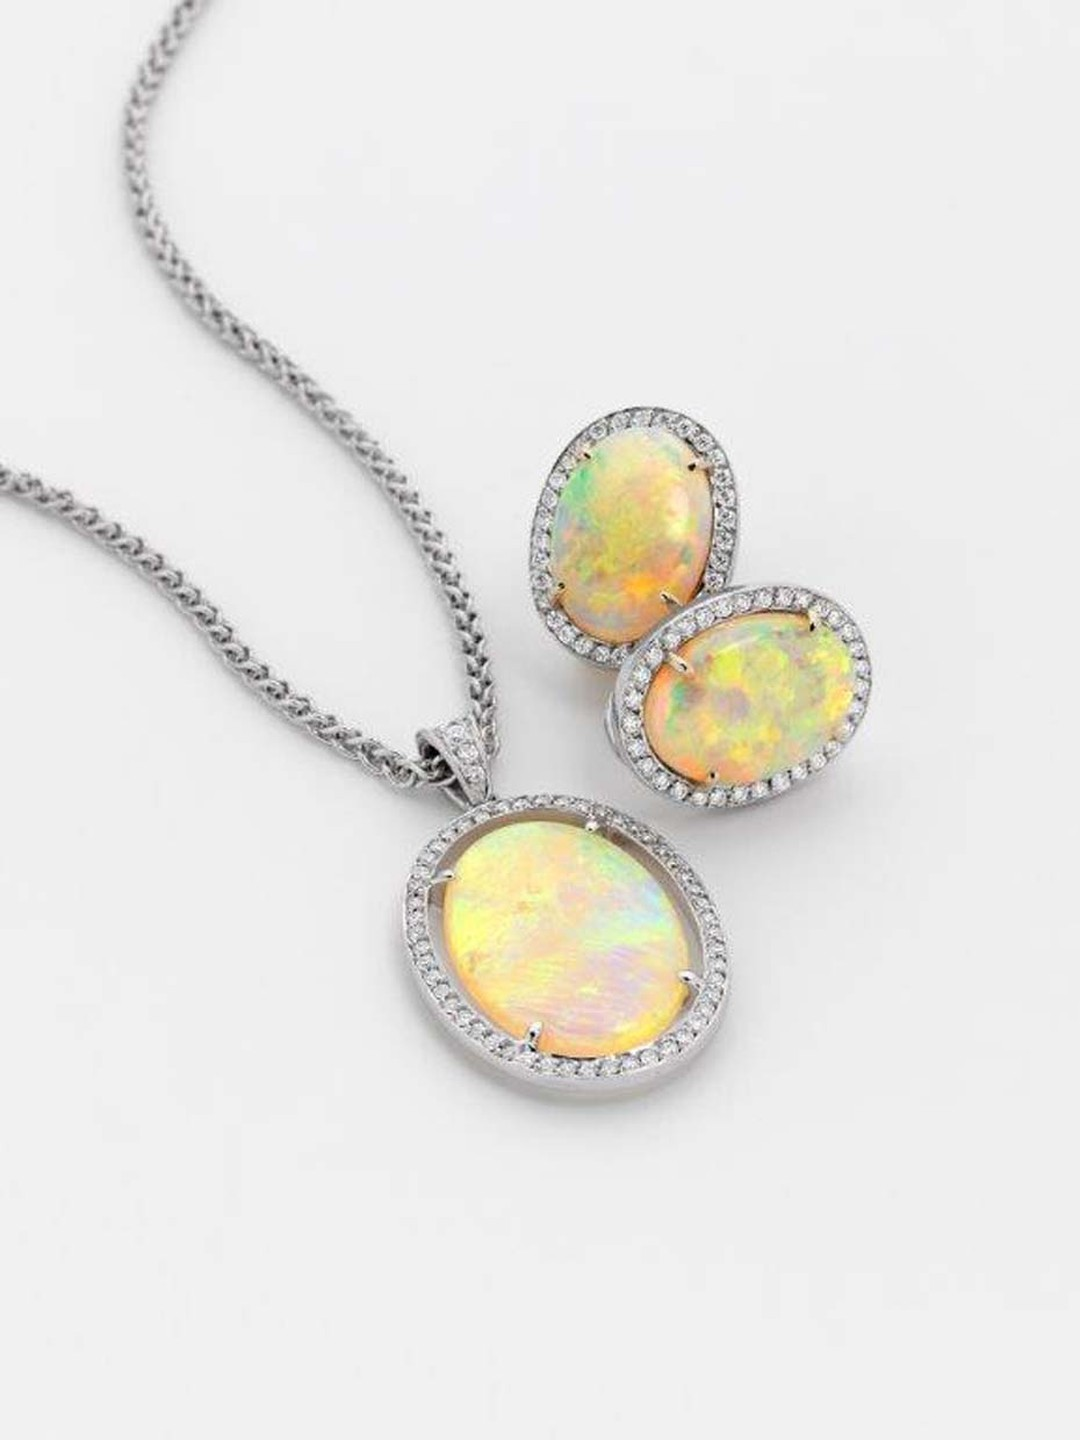 Percy Marks pendant featuring a 7.05ct Coober Pedy opal with brilliant-cut white diamonds on a white gold wheat chain, with matching earrings.